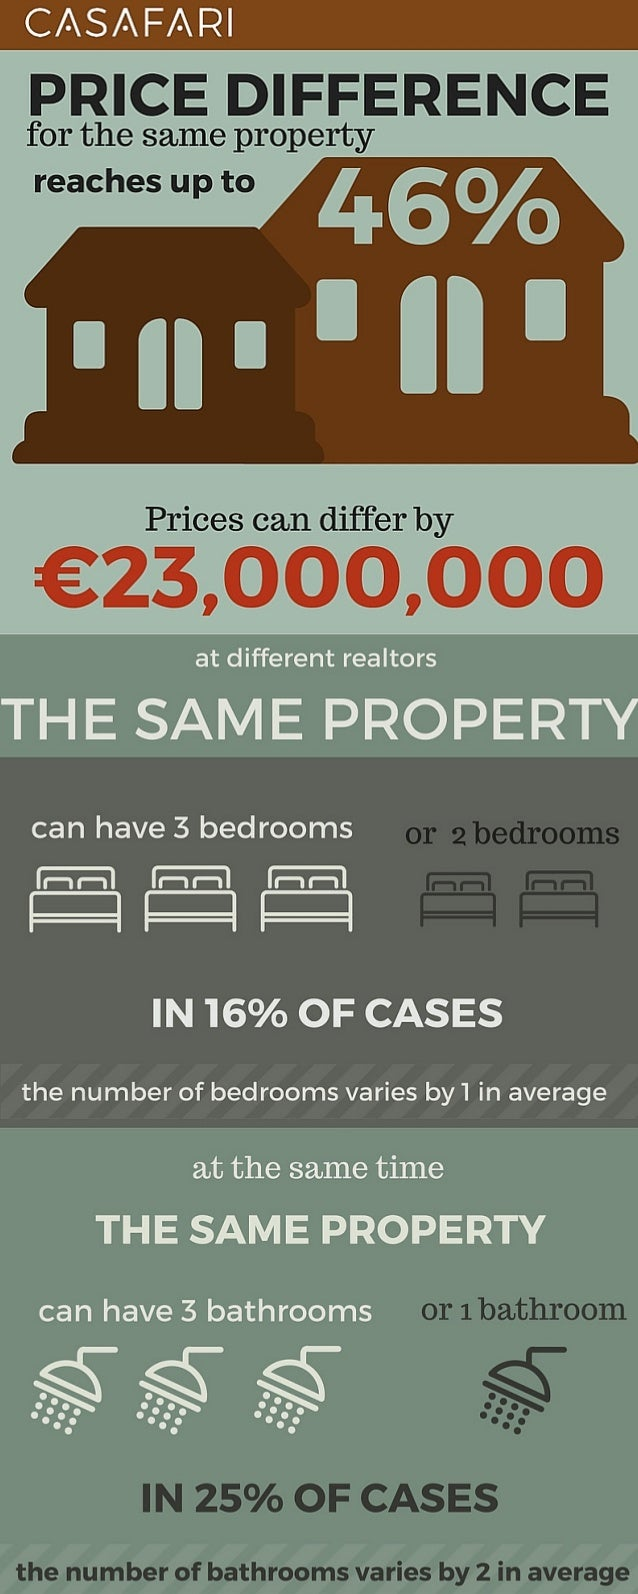 [infographic] 7 issues on the prime real estate market in Spain - casafari Slide 2